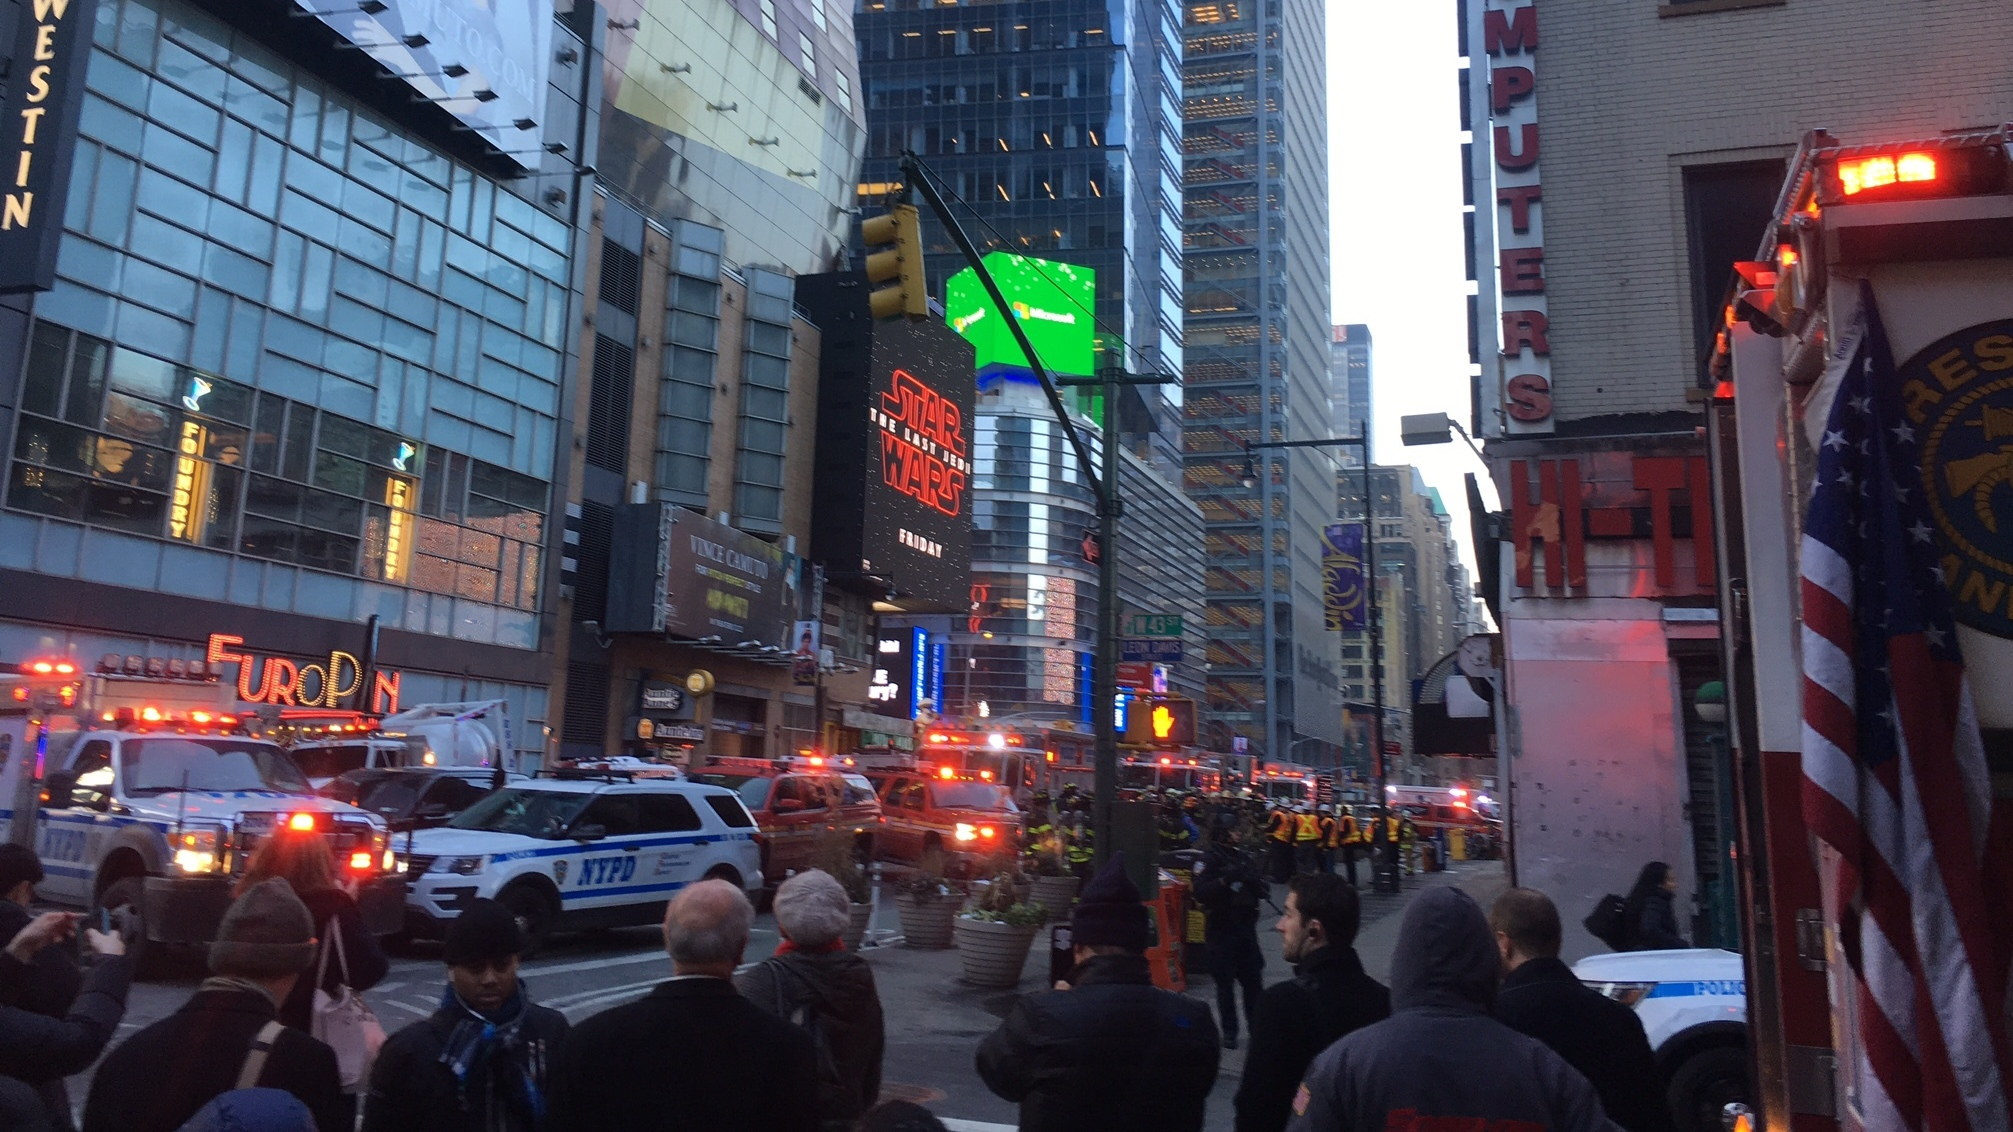 Responding to report of Times Square area explosion